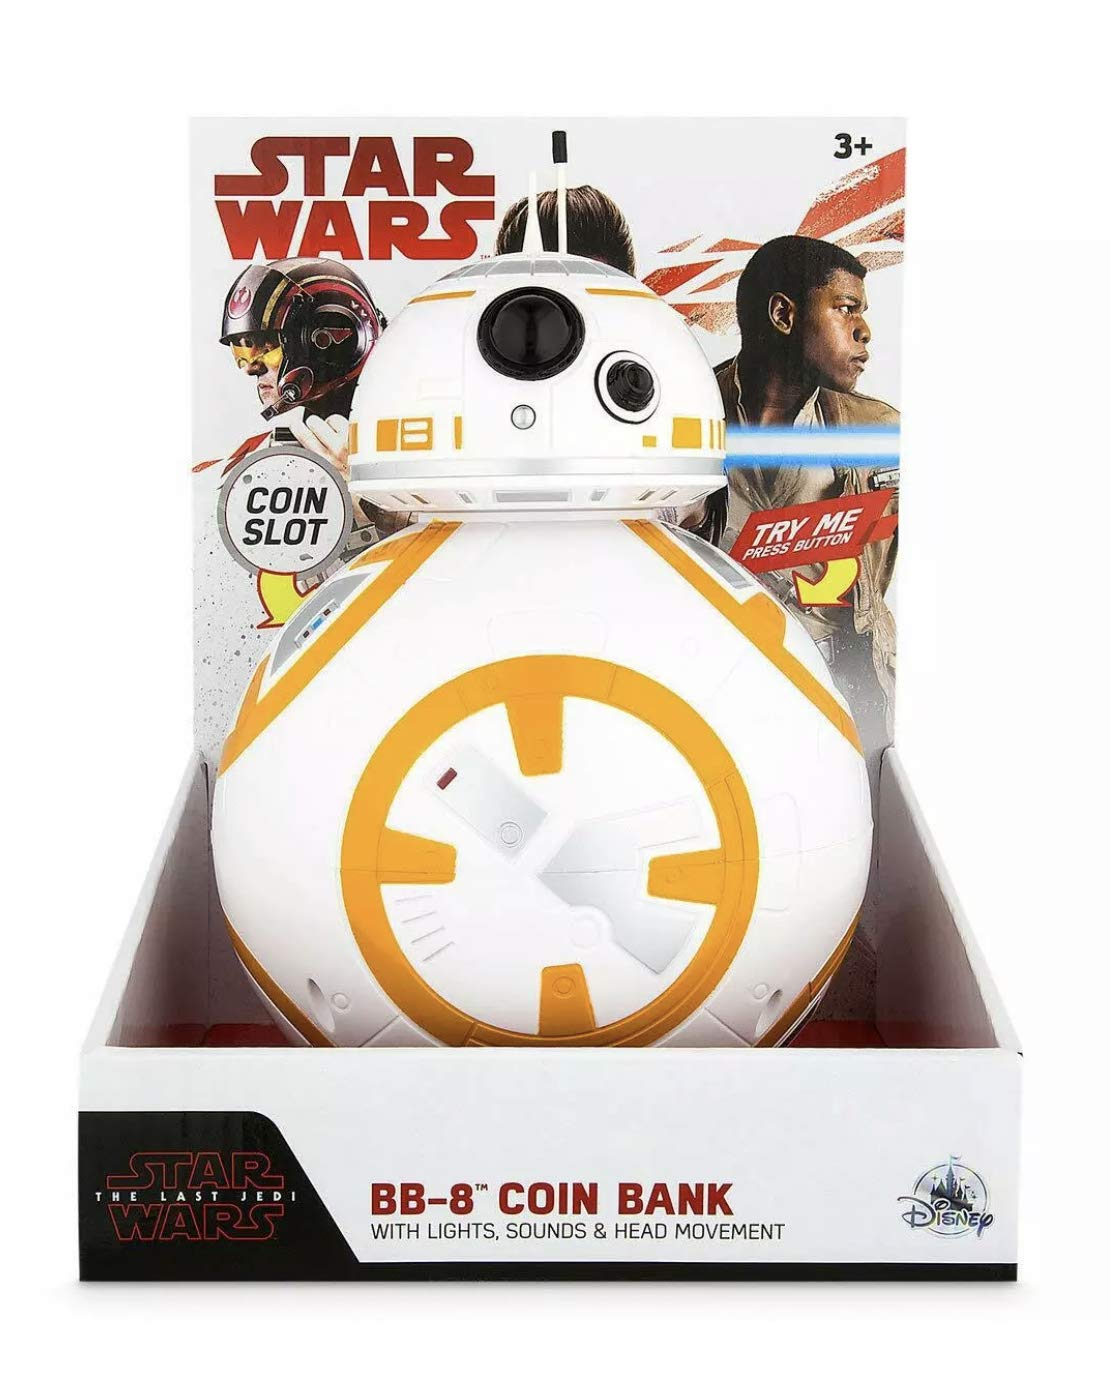 Disney Star Wars The Last Jedi BB-8 Light-Up Coin Bank by Disney (Image #1)